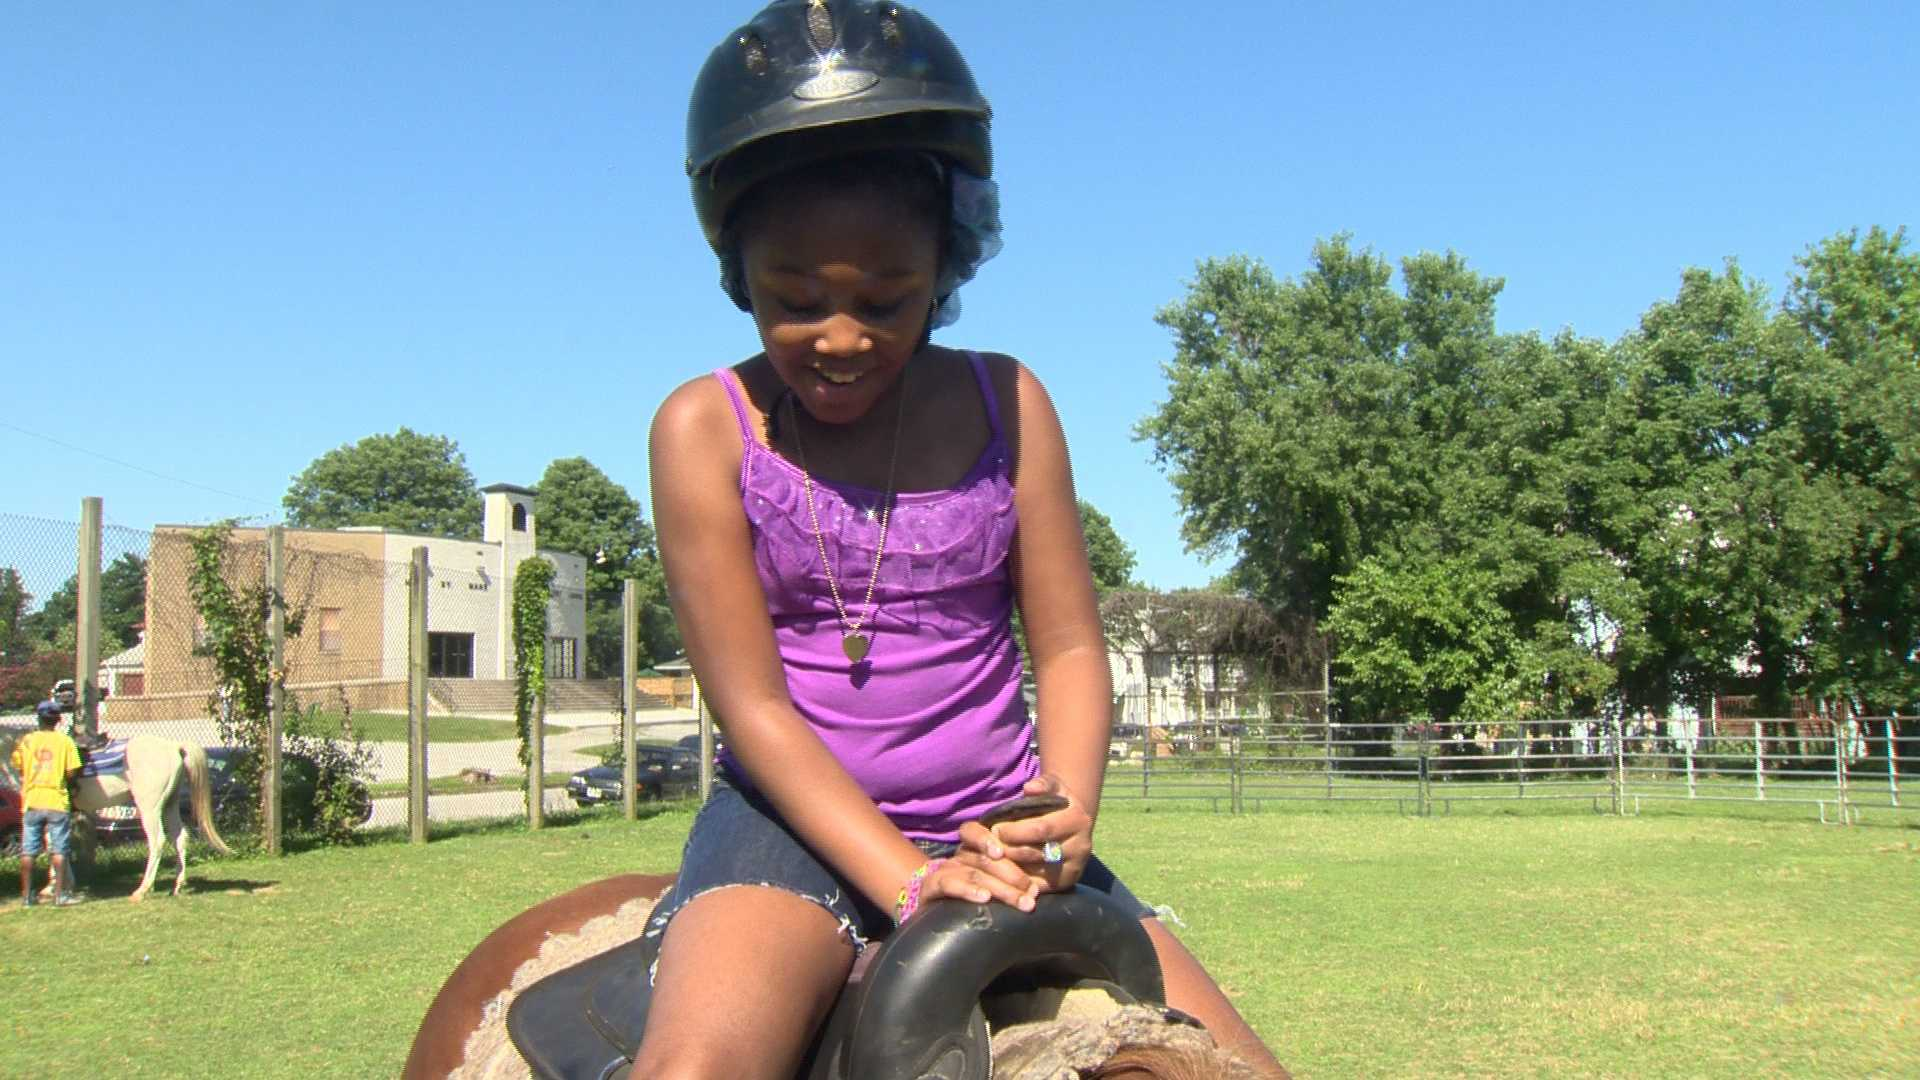 Trinity McClain smiles after she gets onto the horse.